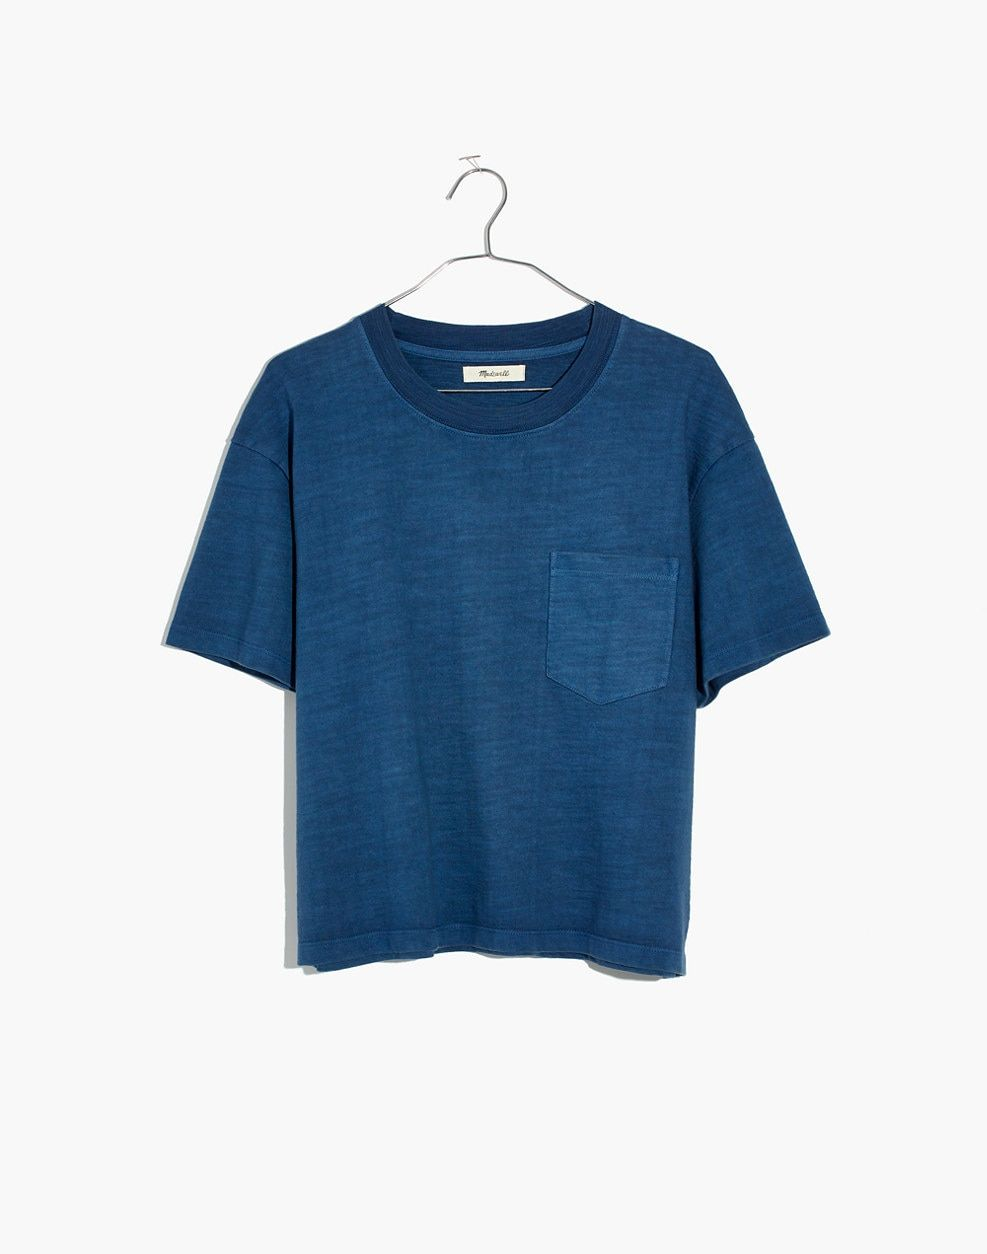 254f0365d83748 Madewell Garment-Dyed Easy Crop Tee